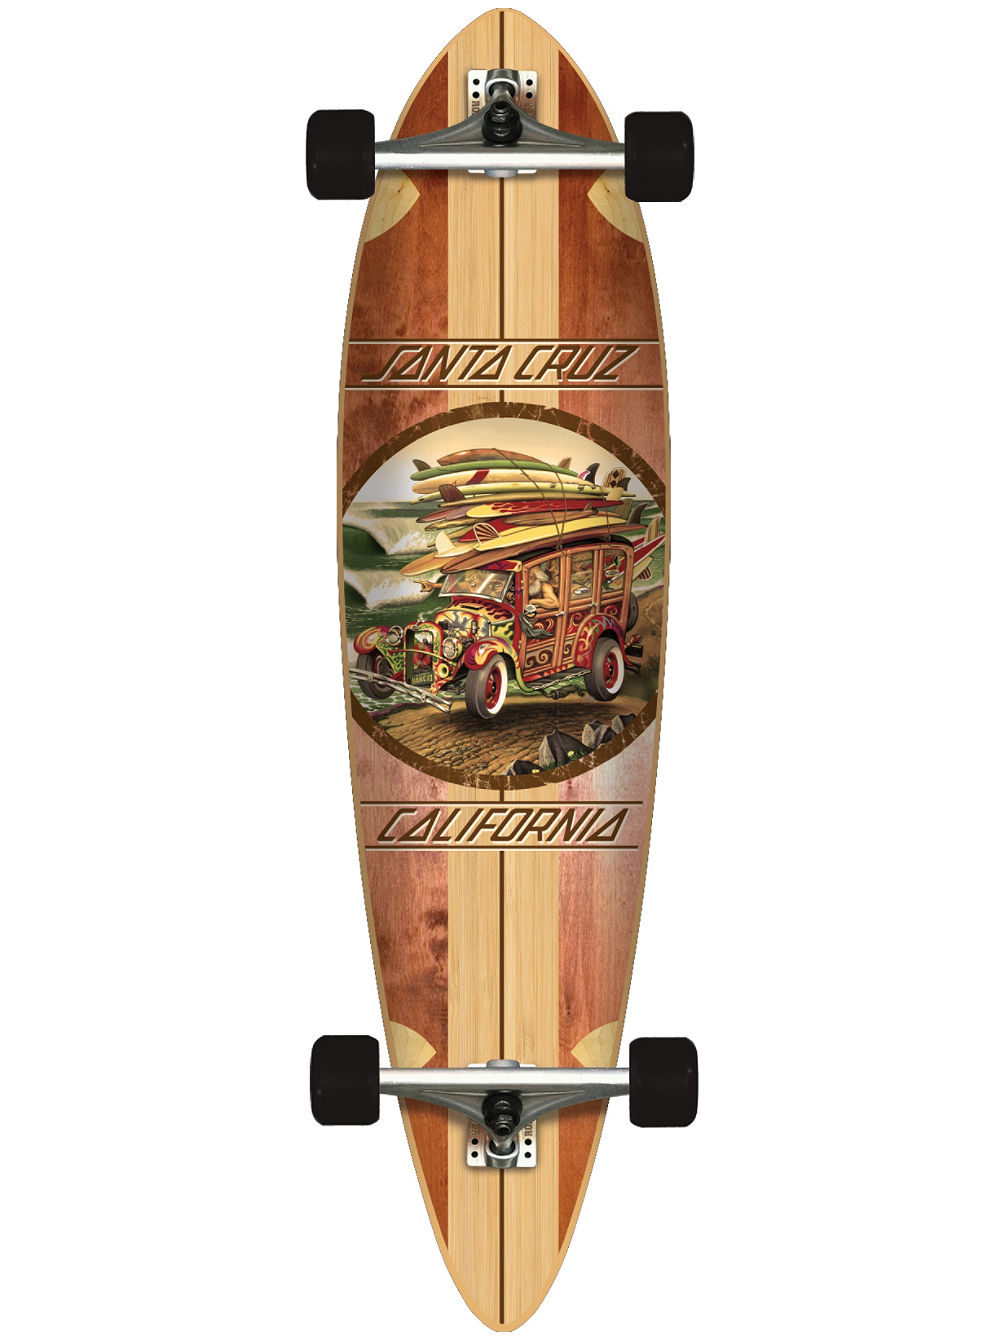 "Cali Cruiser Pin Tail 9.6"" x 39"" Complete"